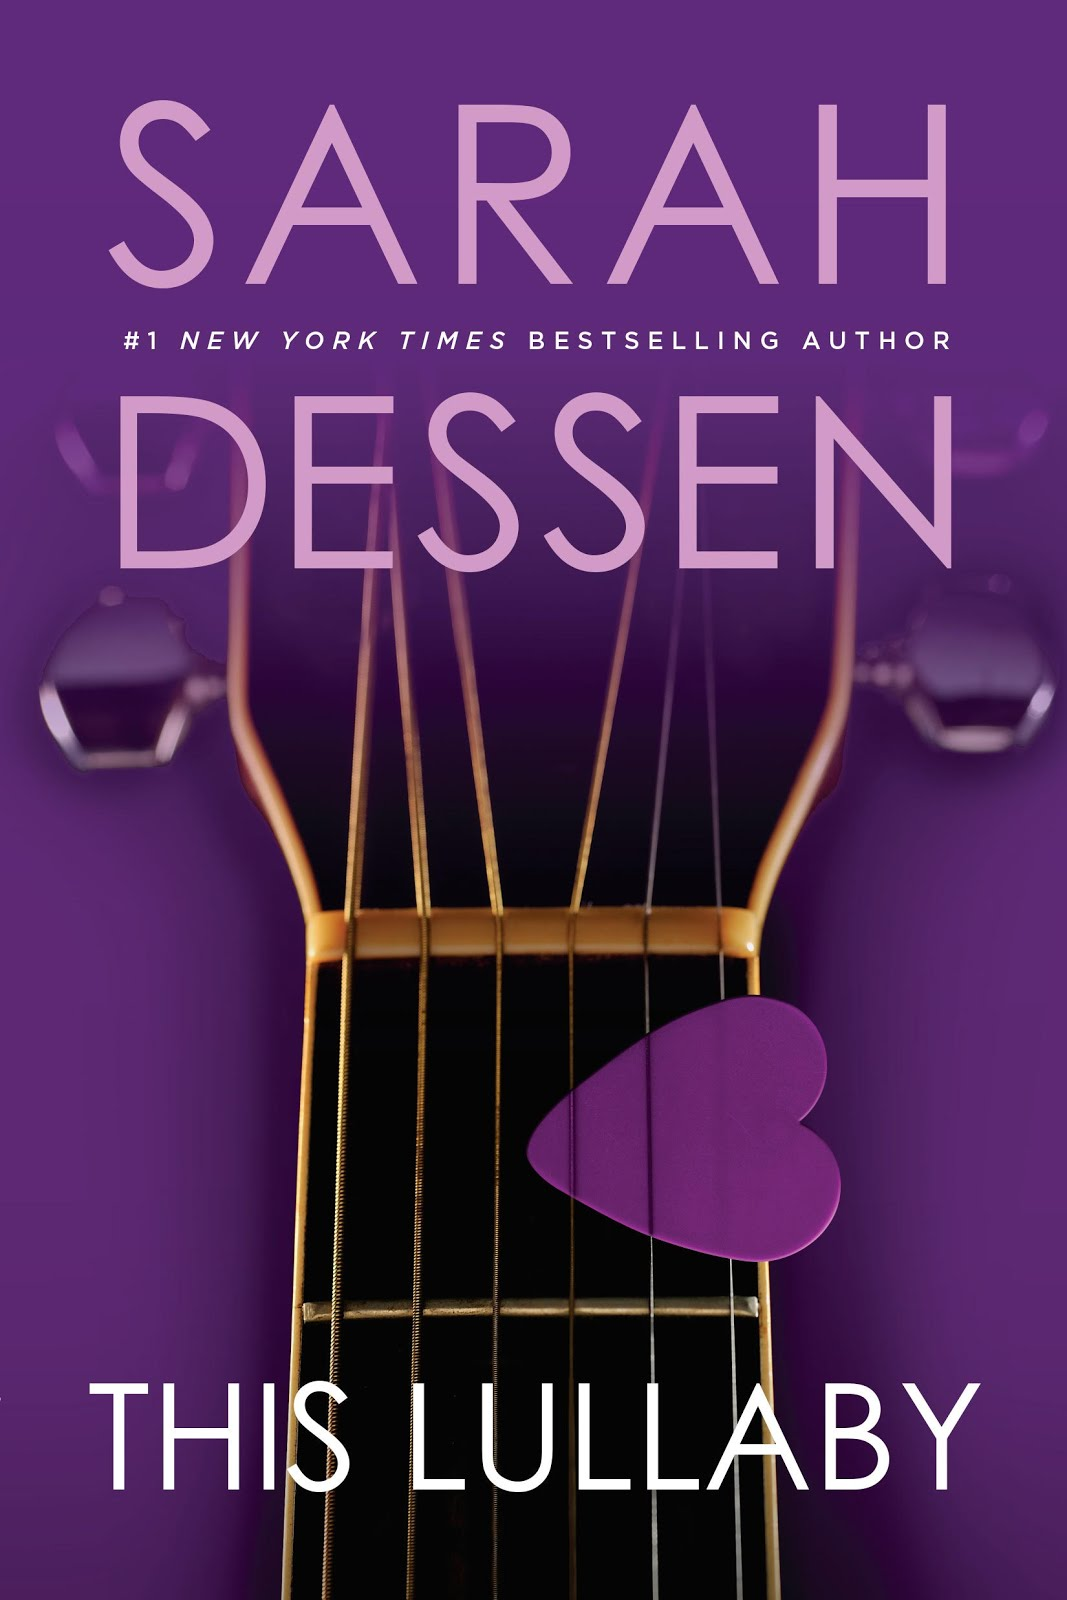 Title: This Lullaby Author: Sarah Dessen Publication Date: Reissue June  2012 Publisher: Speak Format: Paperback Source: Previously Owned